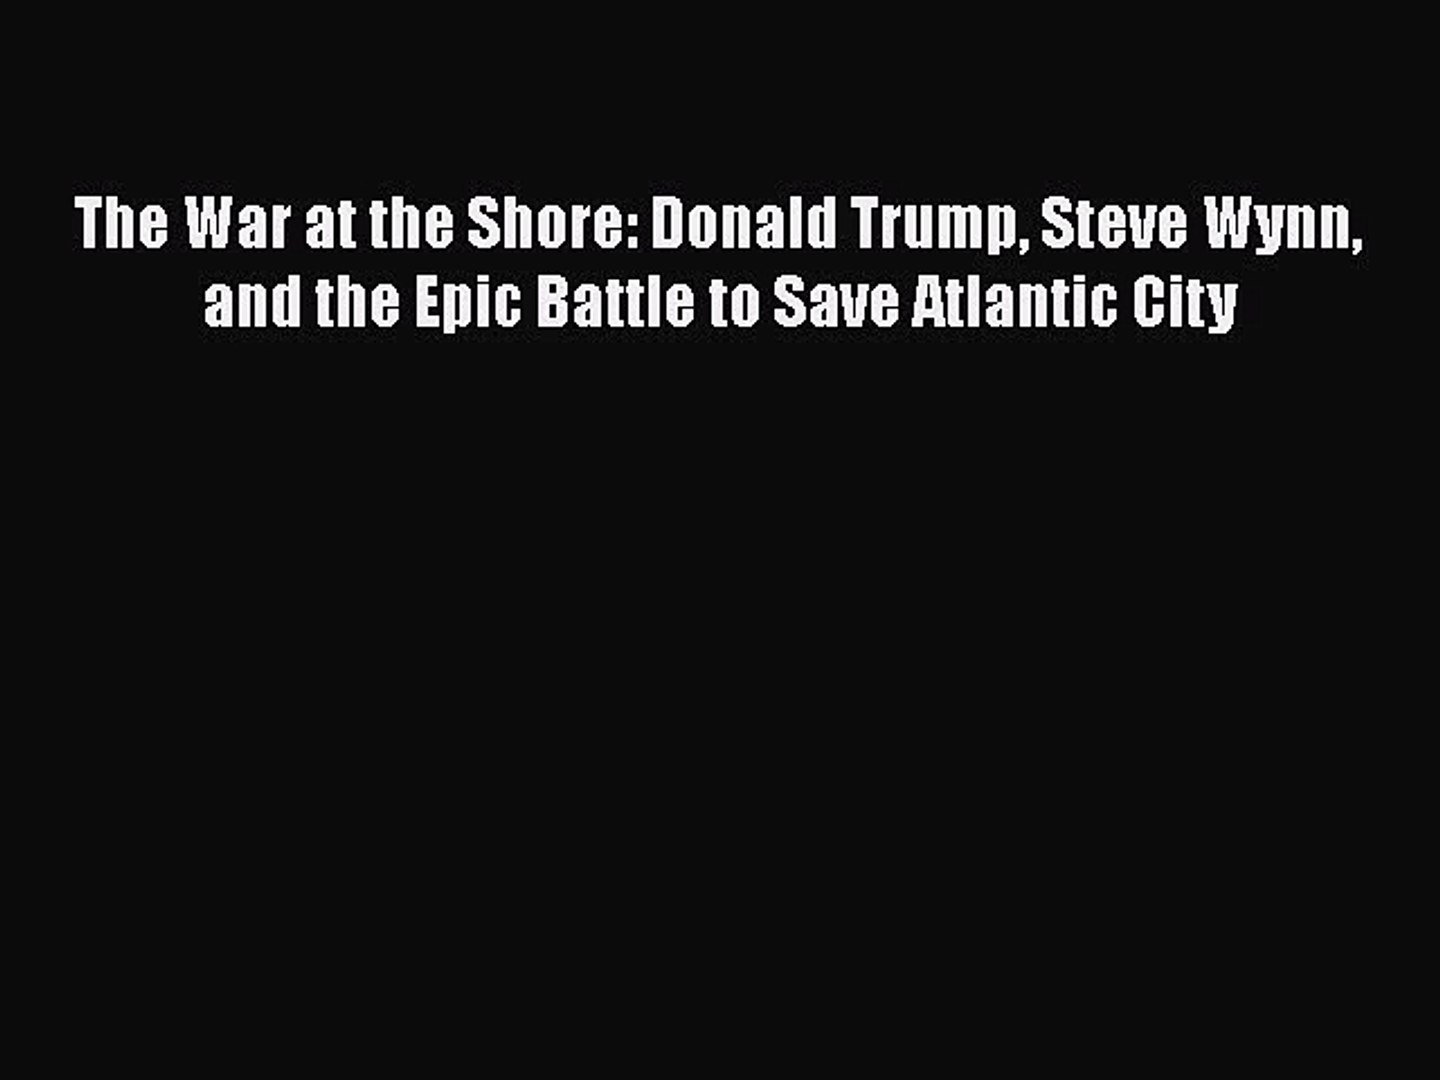 PDF The War at the Shore: Donald Trump Steve Wynn and the Epic Battle to Save Atlantic City